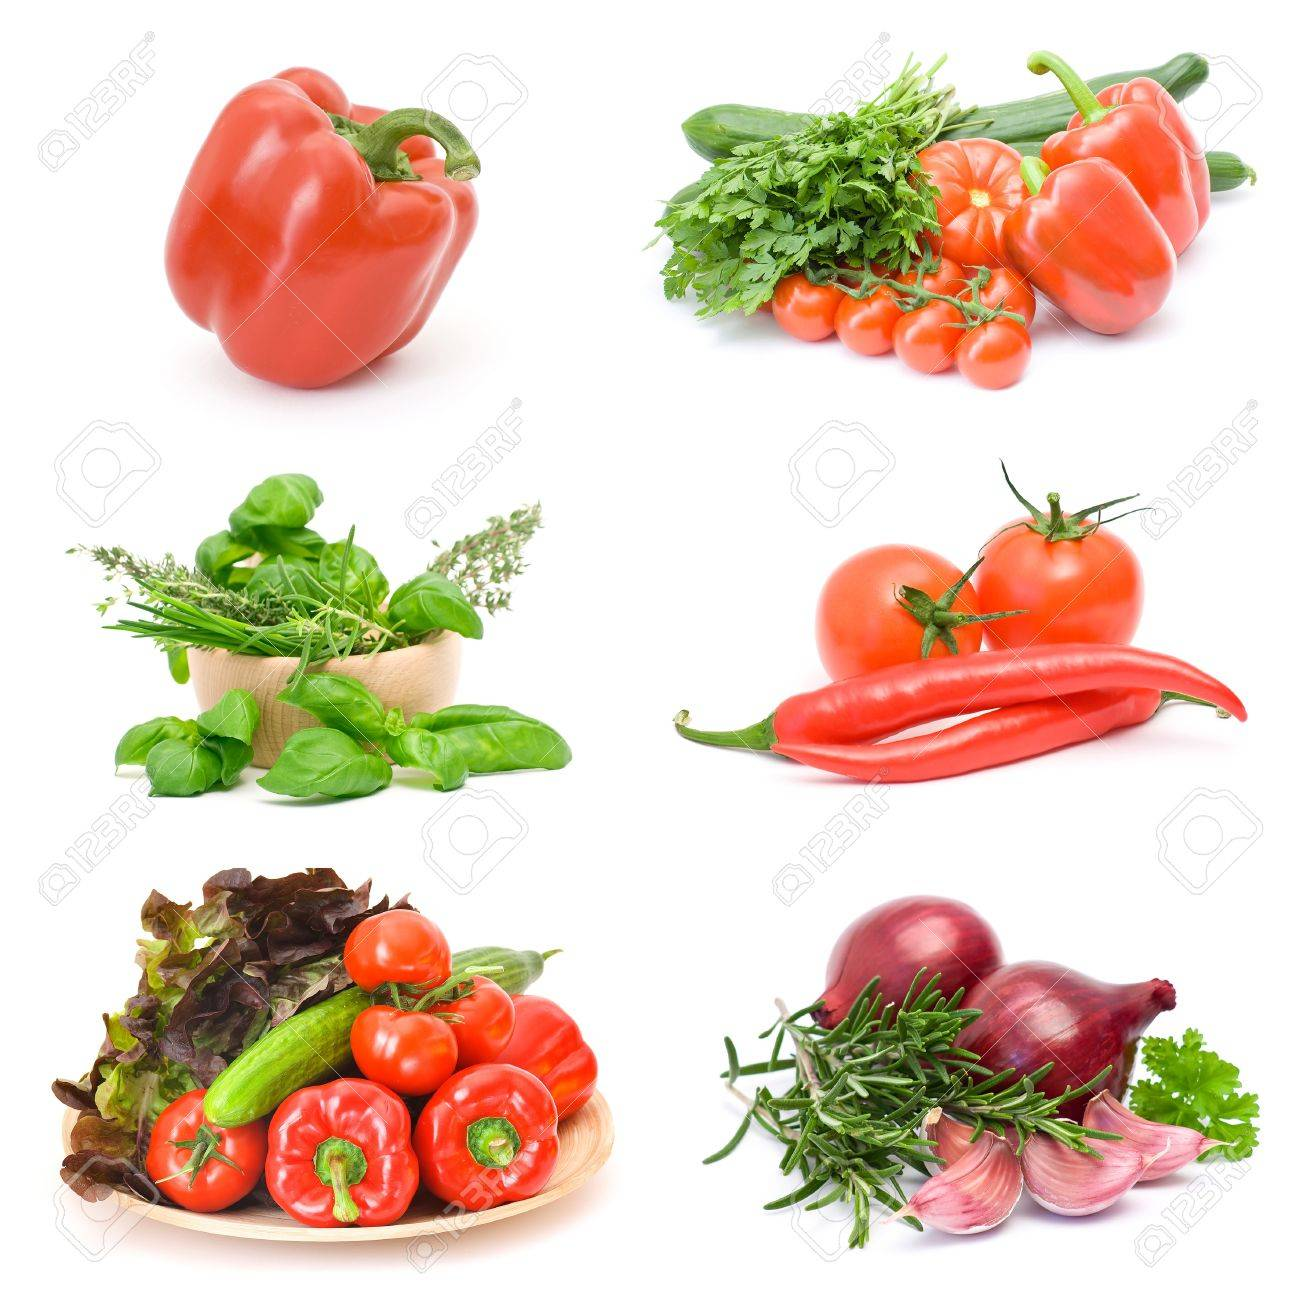 vegetables collections Stock Photo - 12887384